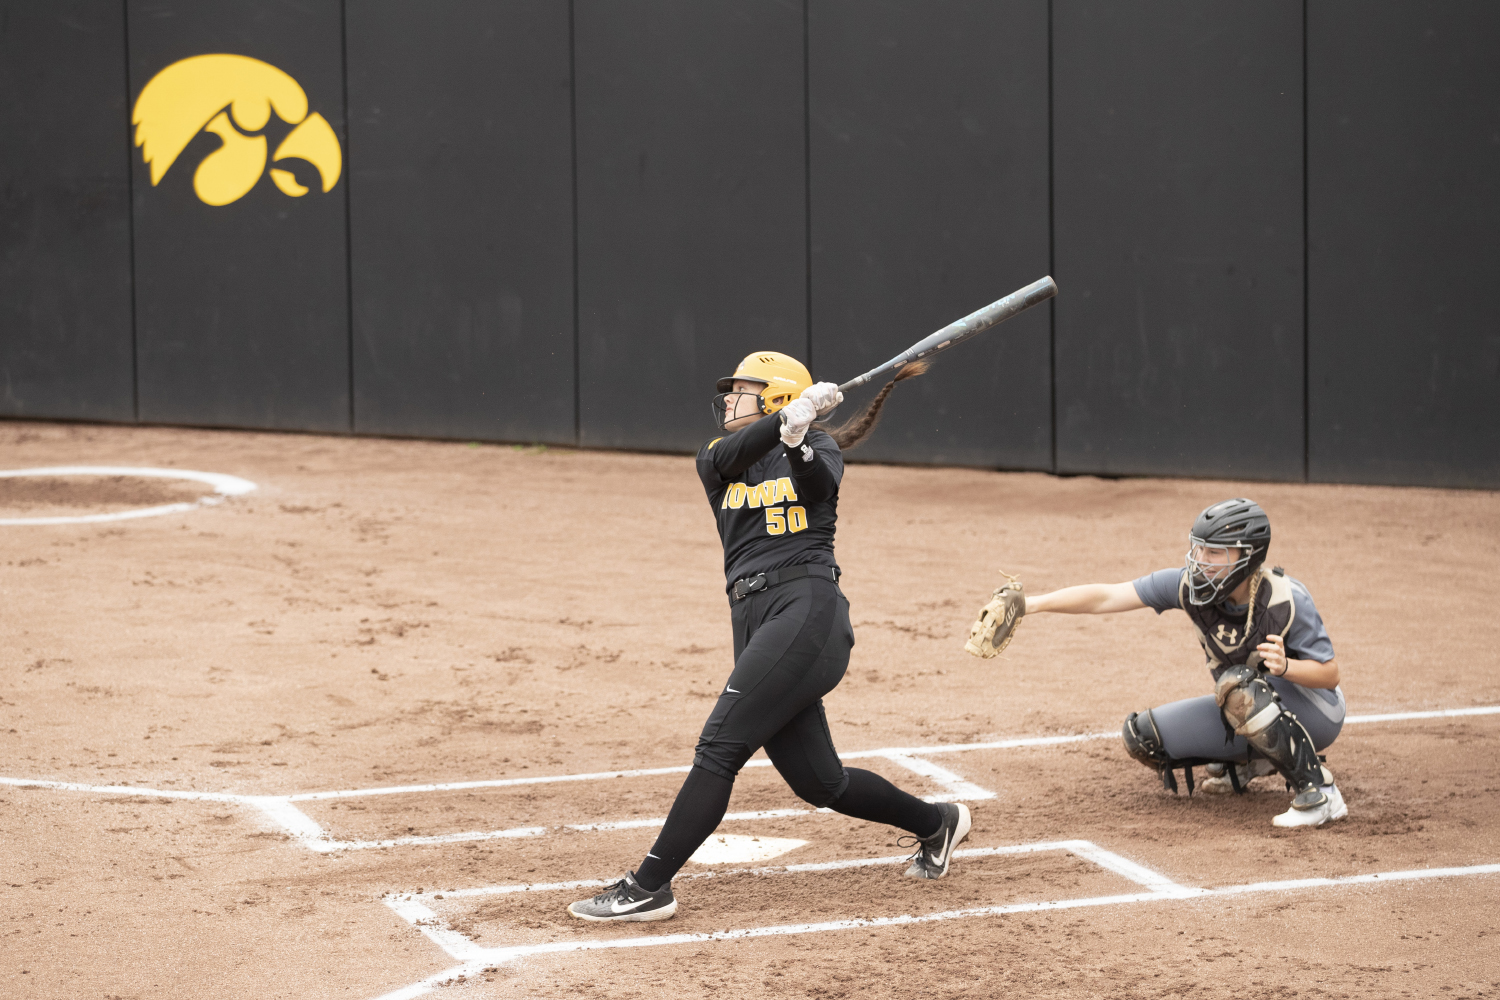 Iowa infielder Kalena Burns makes a hit at the Iowa softball game against Indian Hills at Pearl Field on Sunday, October 6th, 2019. The Hawkeyes defeated the Warriors 21-2.